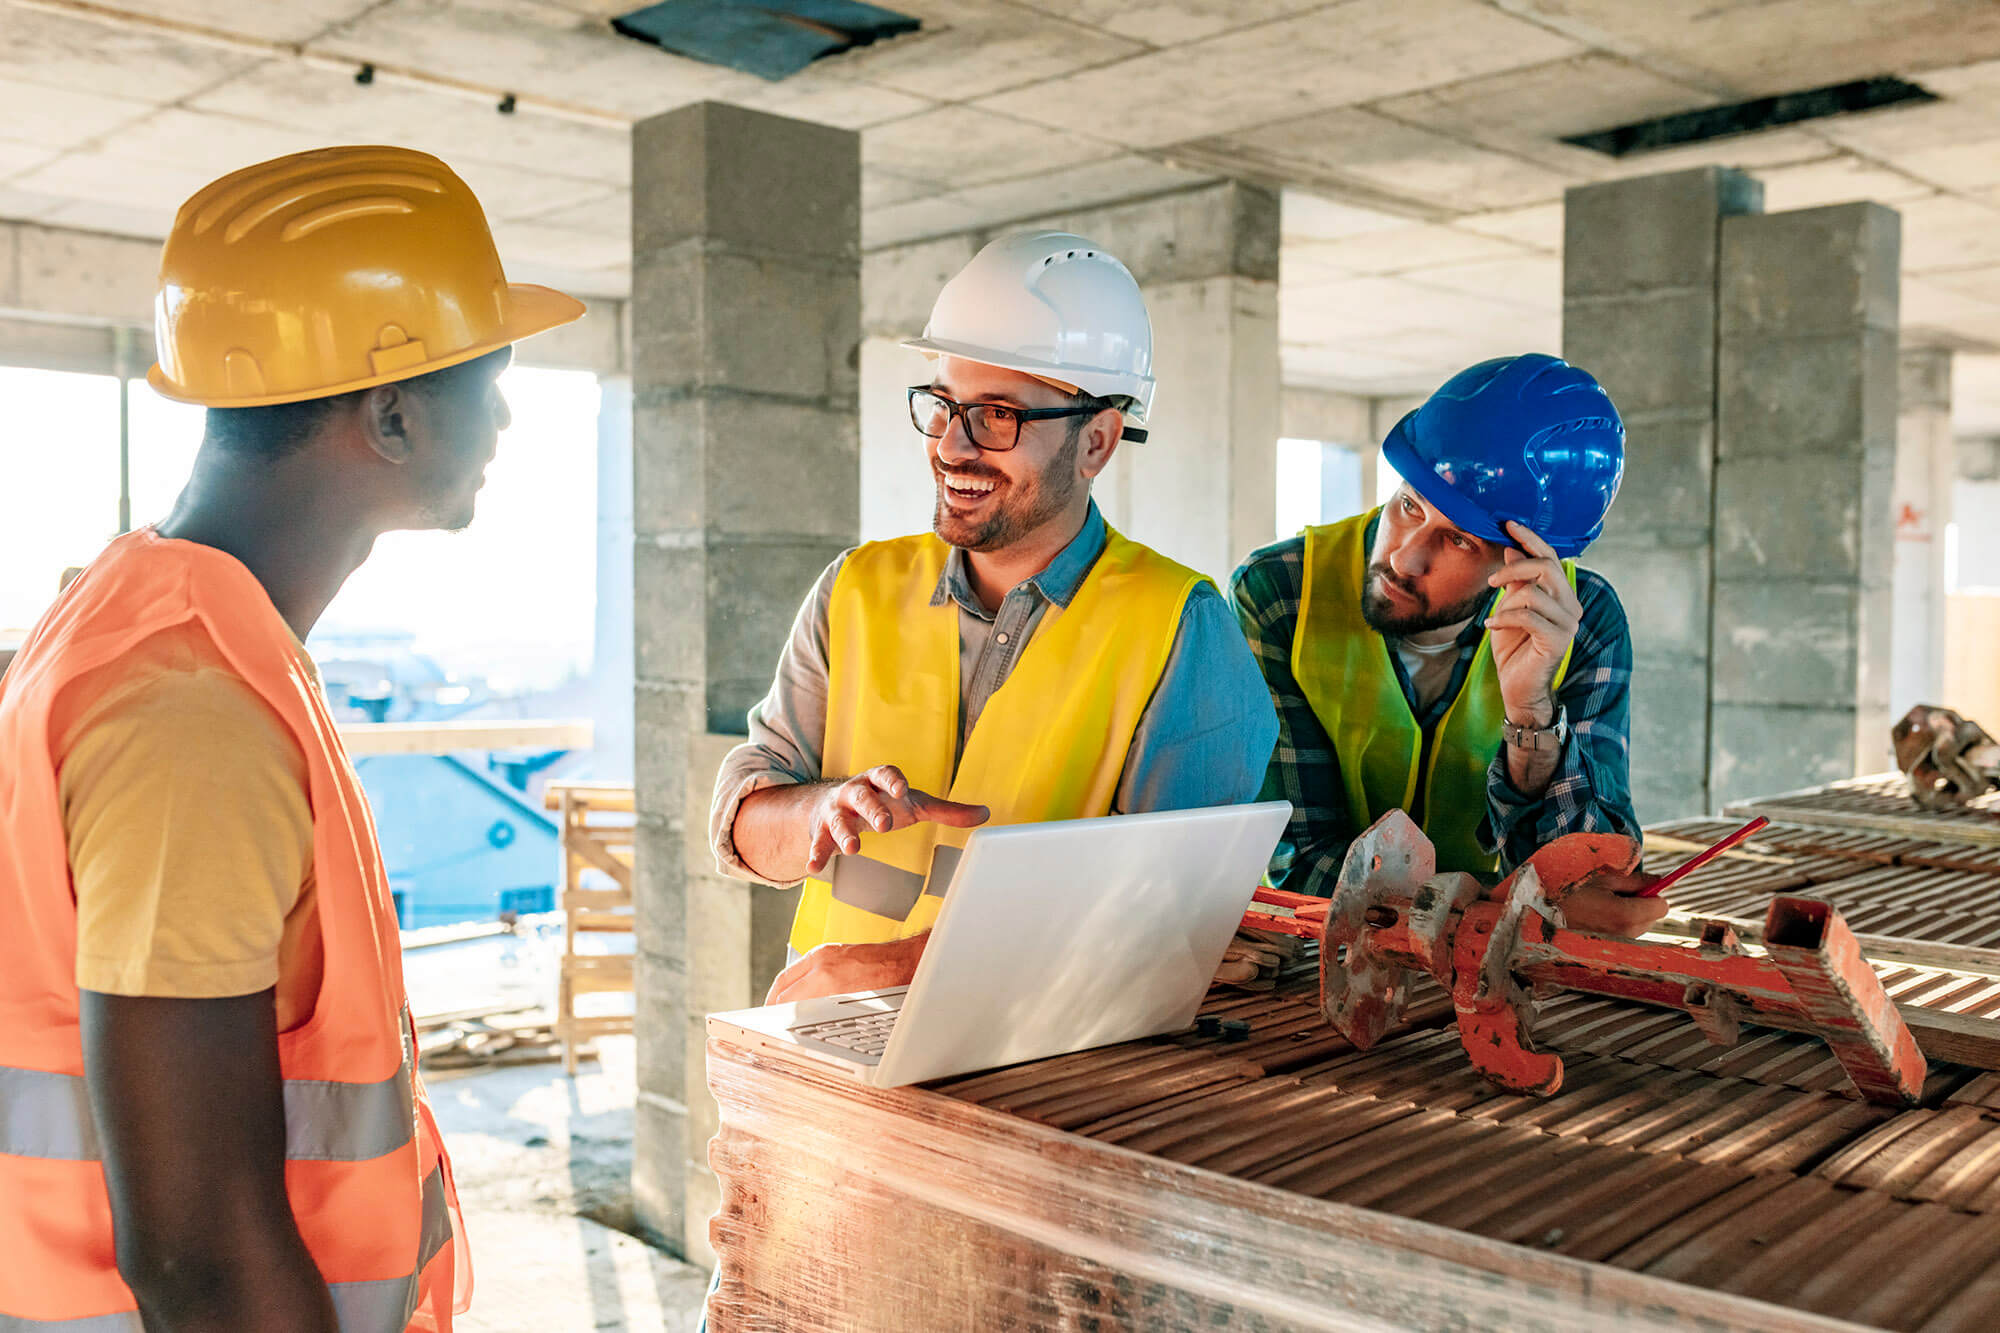 three med with hard hats and neon vests smile and discuss in front of a laptop on a worksite